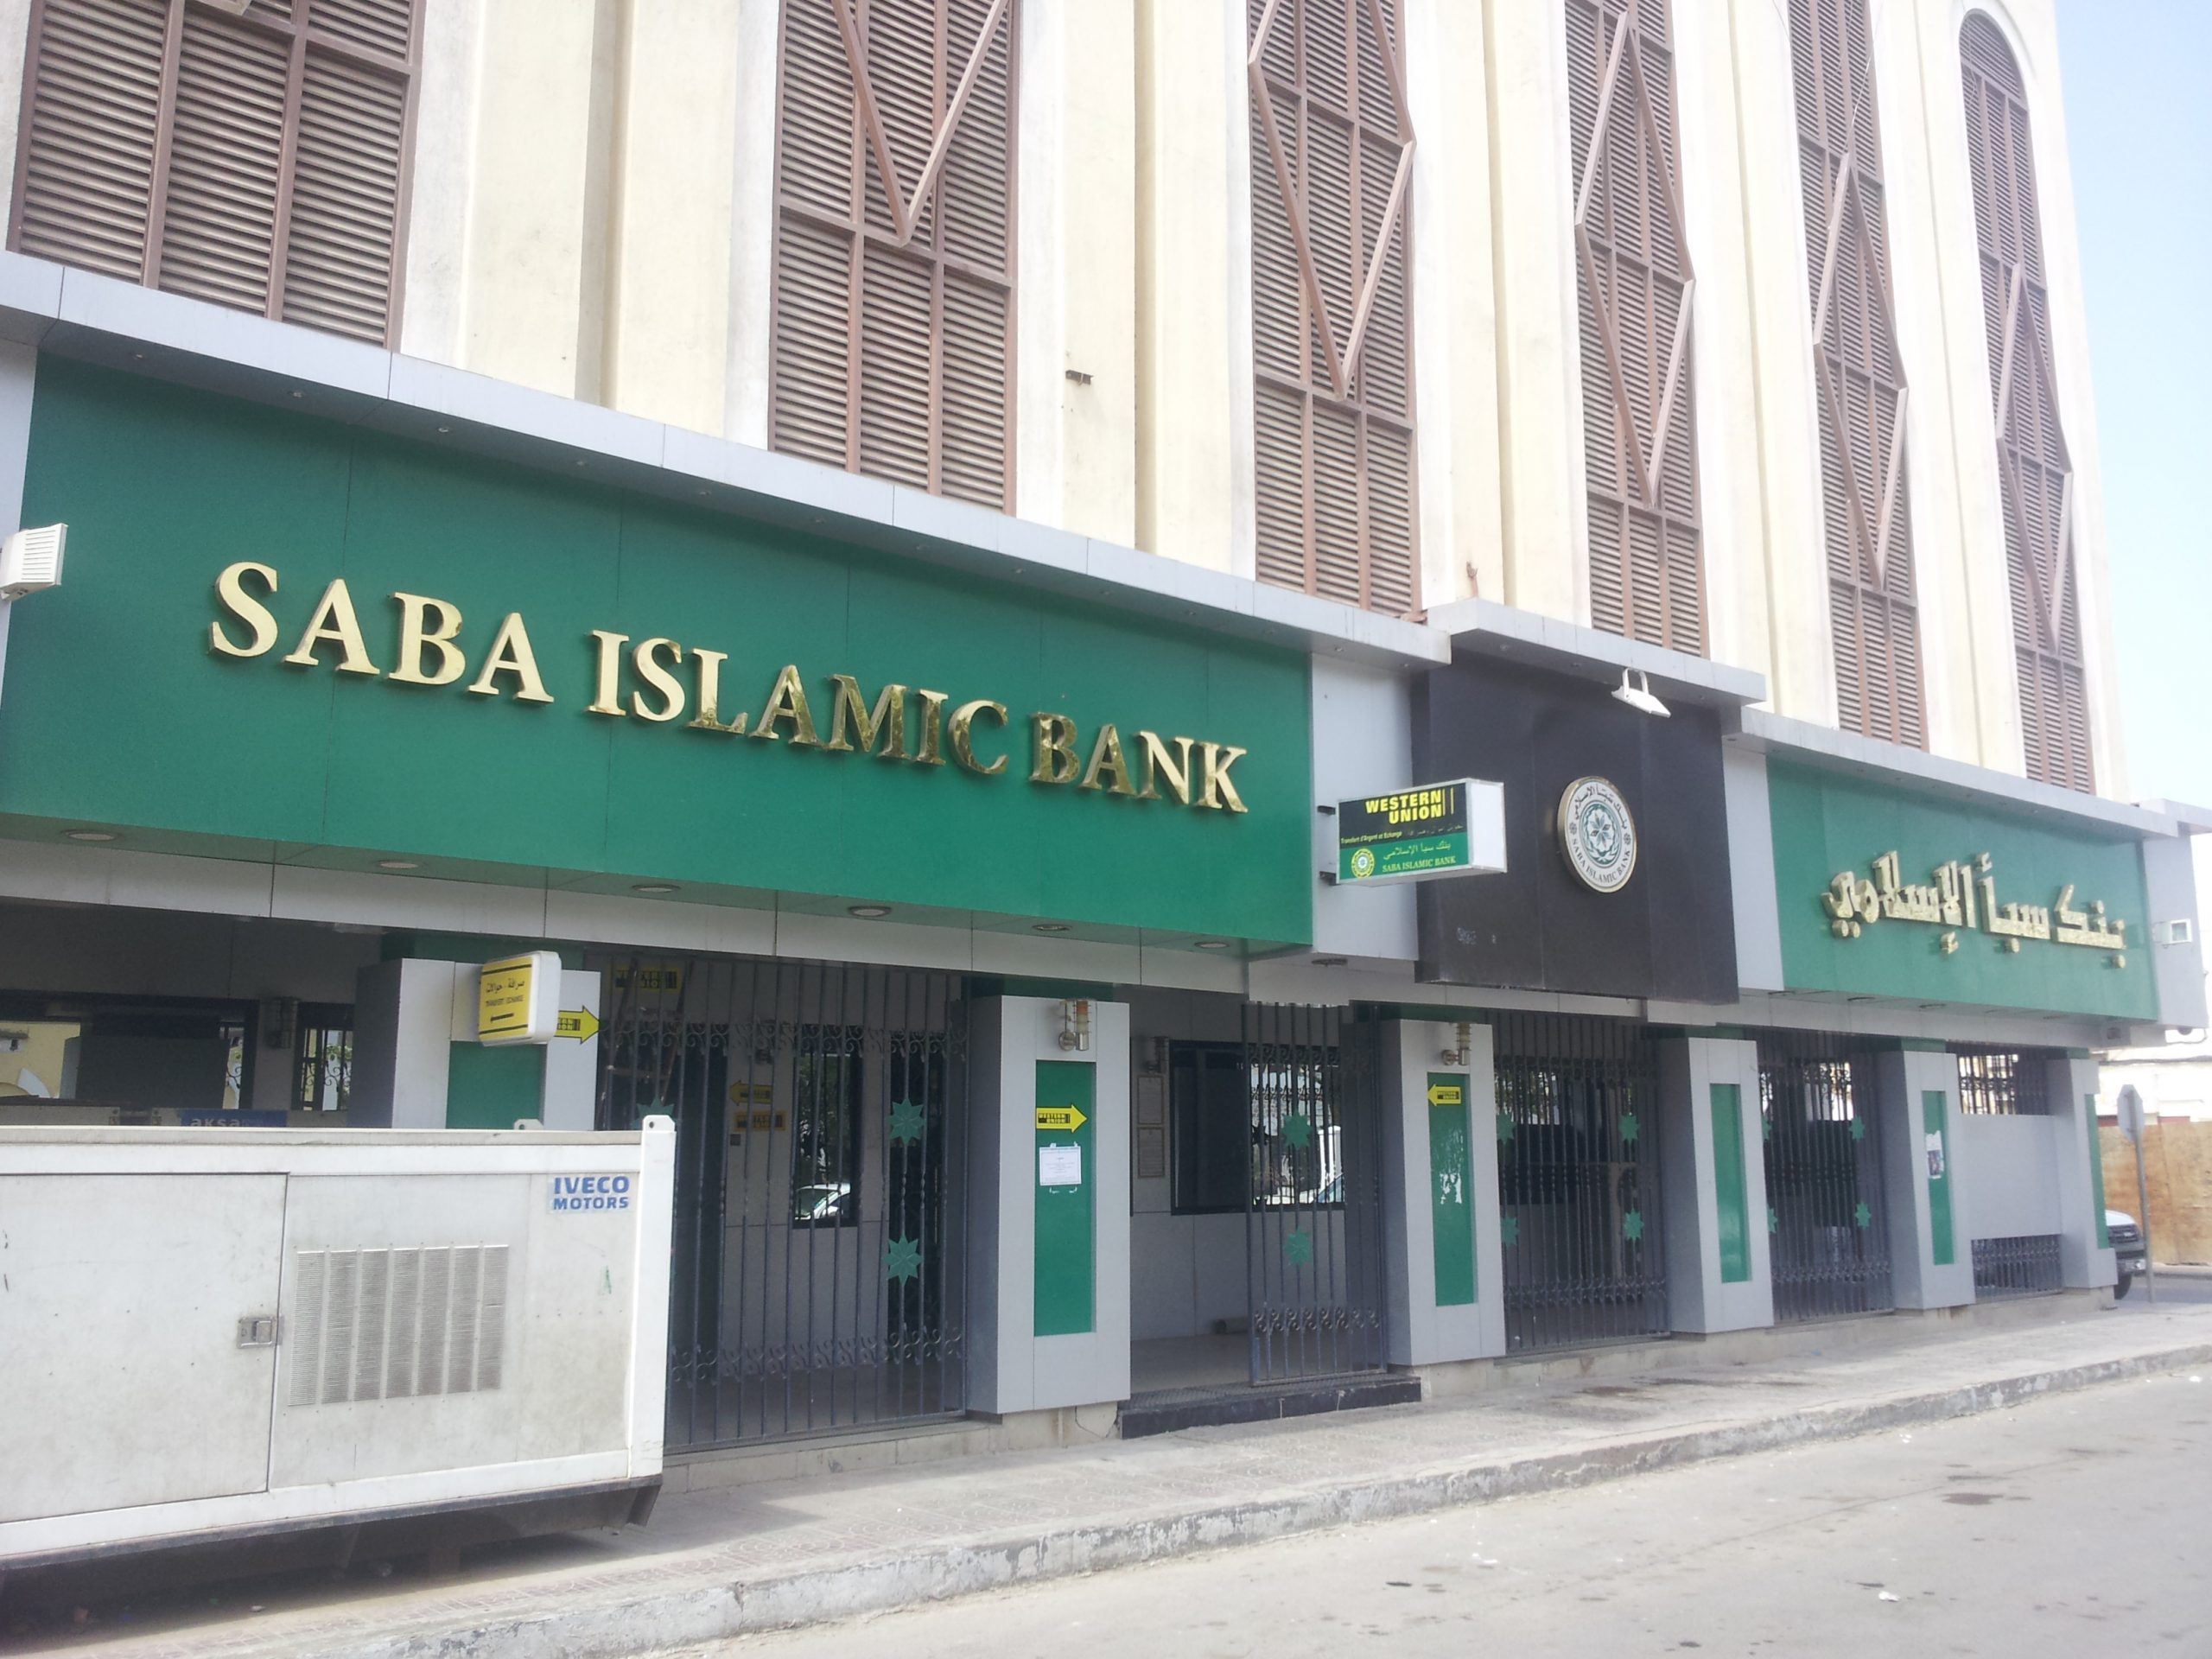 'Islam, for a Better World?' – The World of Islamic Banking